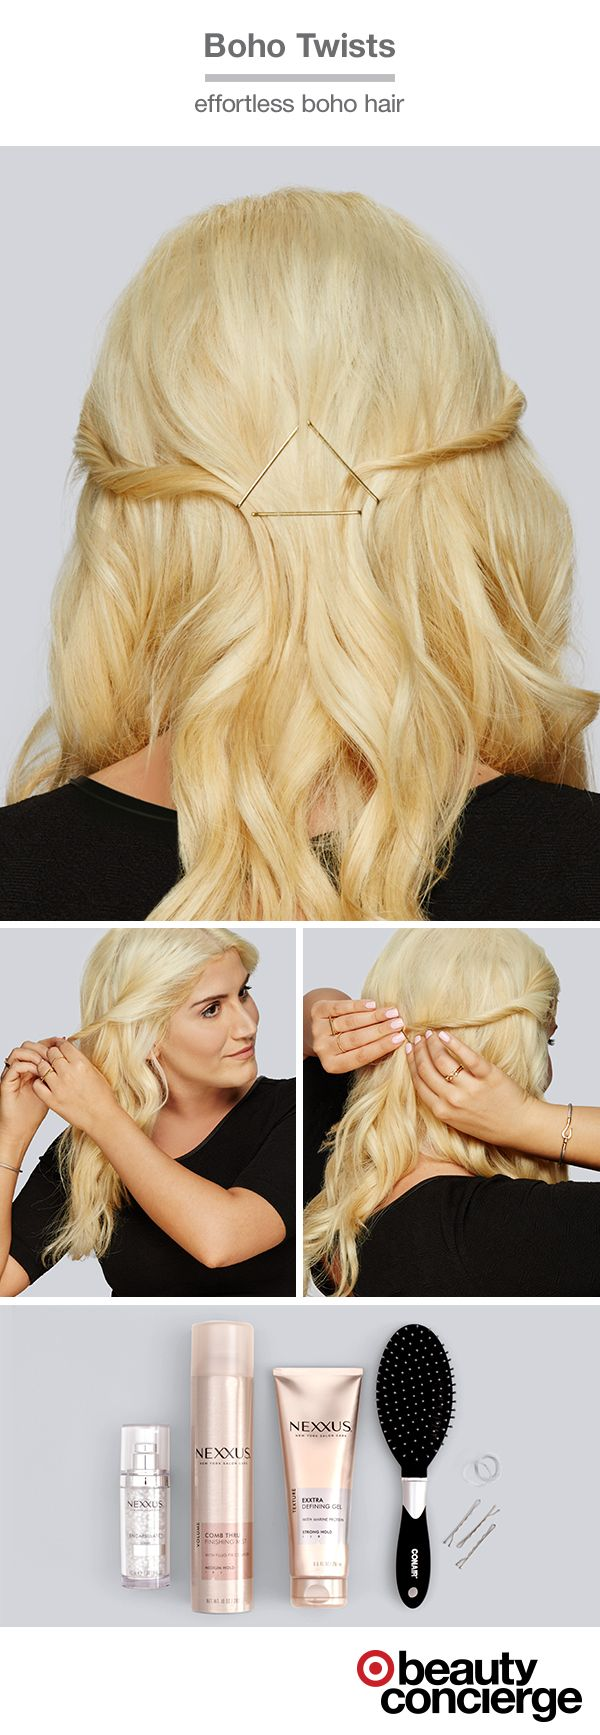 HOW TO: Get a boho-inspired look. Target Beauty Concierge, Neda from Orange County, shows how to create easy boho twists. Start with hair parted down the middle. Then, take a small piece from one side & twist. Fasten with a bobby pin. Repeat twist on the other side & pin. Finish the look by working smoothing serum through the ends.